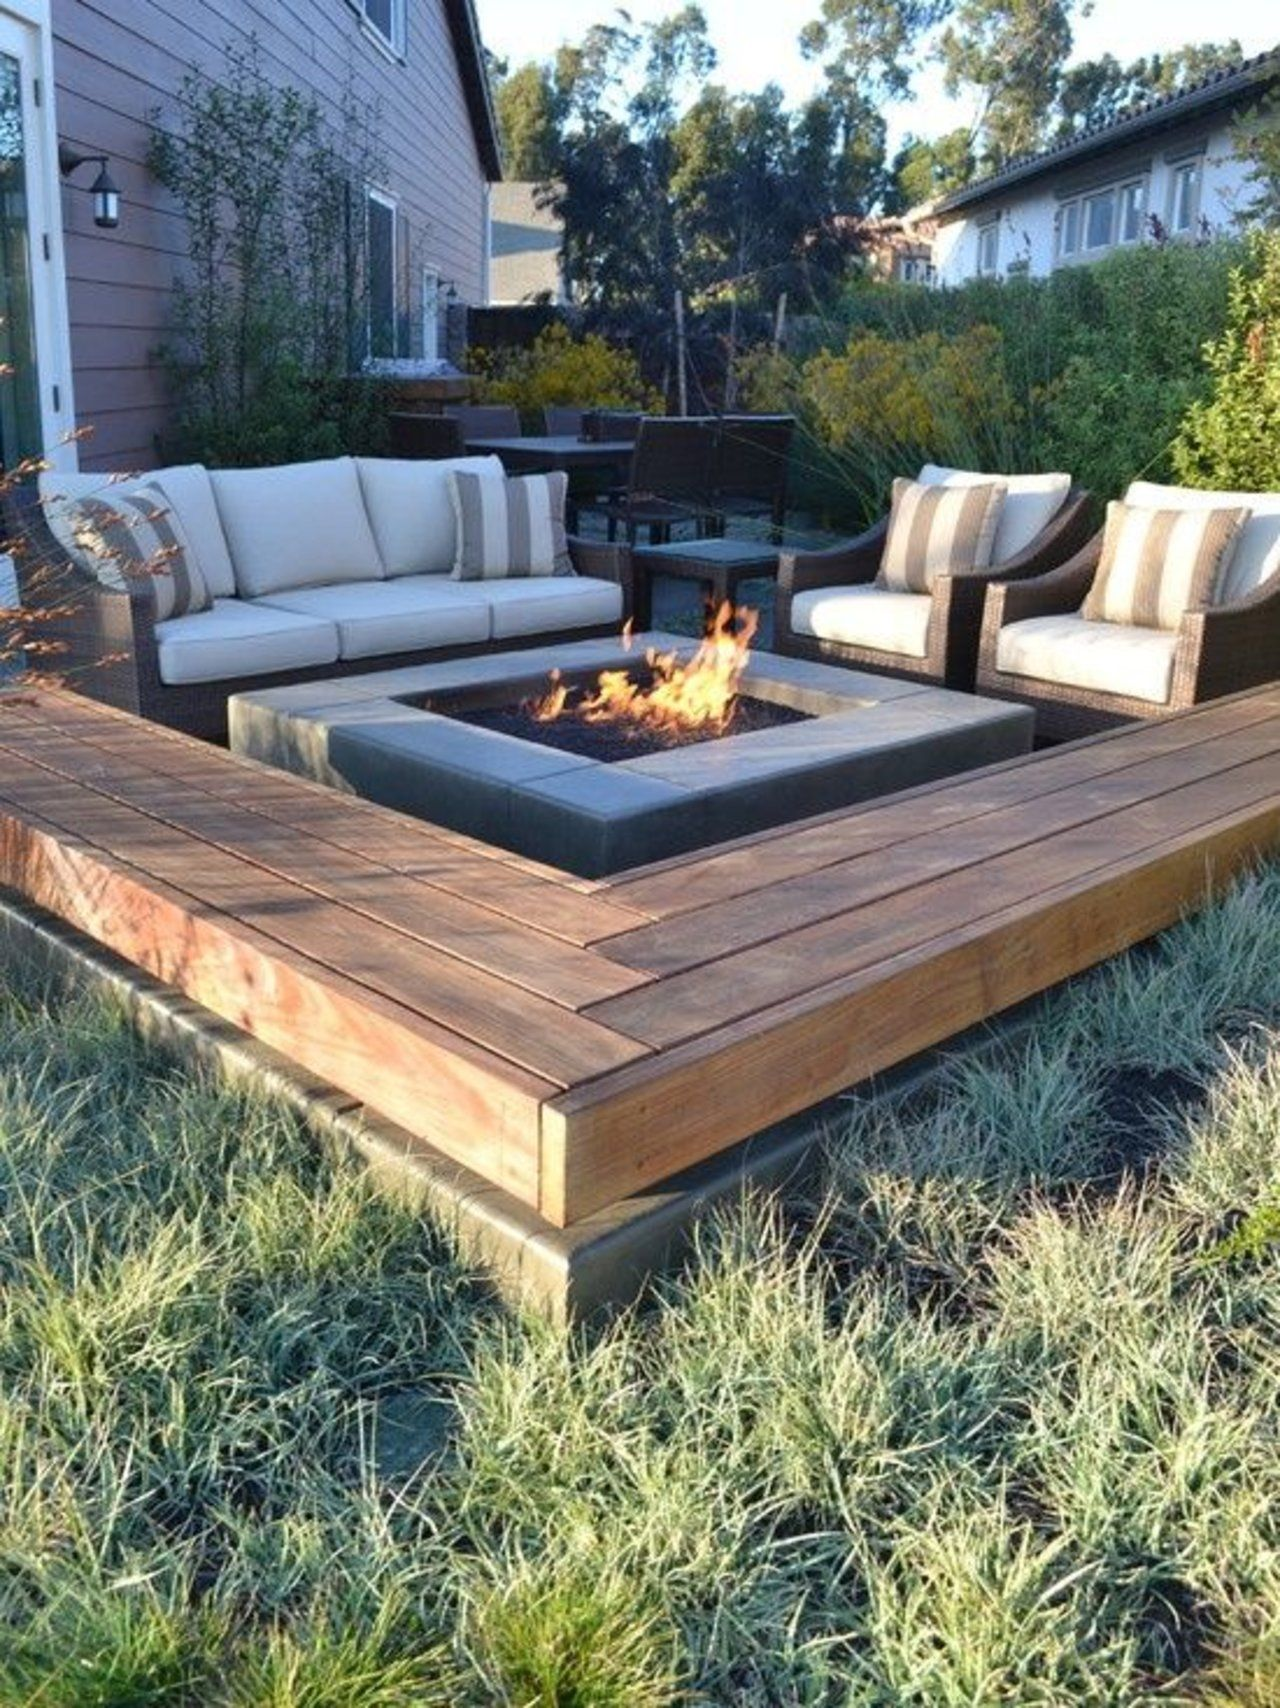 Outdoor patio ideas with fire pit - The Secrets To The Best Backyards On Pinterest Outdoor Fire Pitsdeck